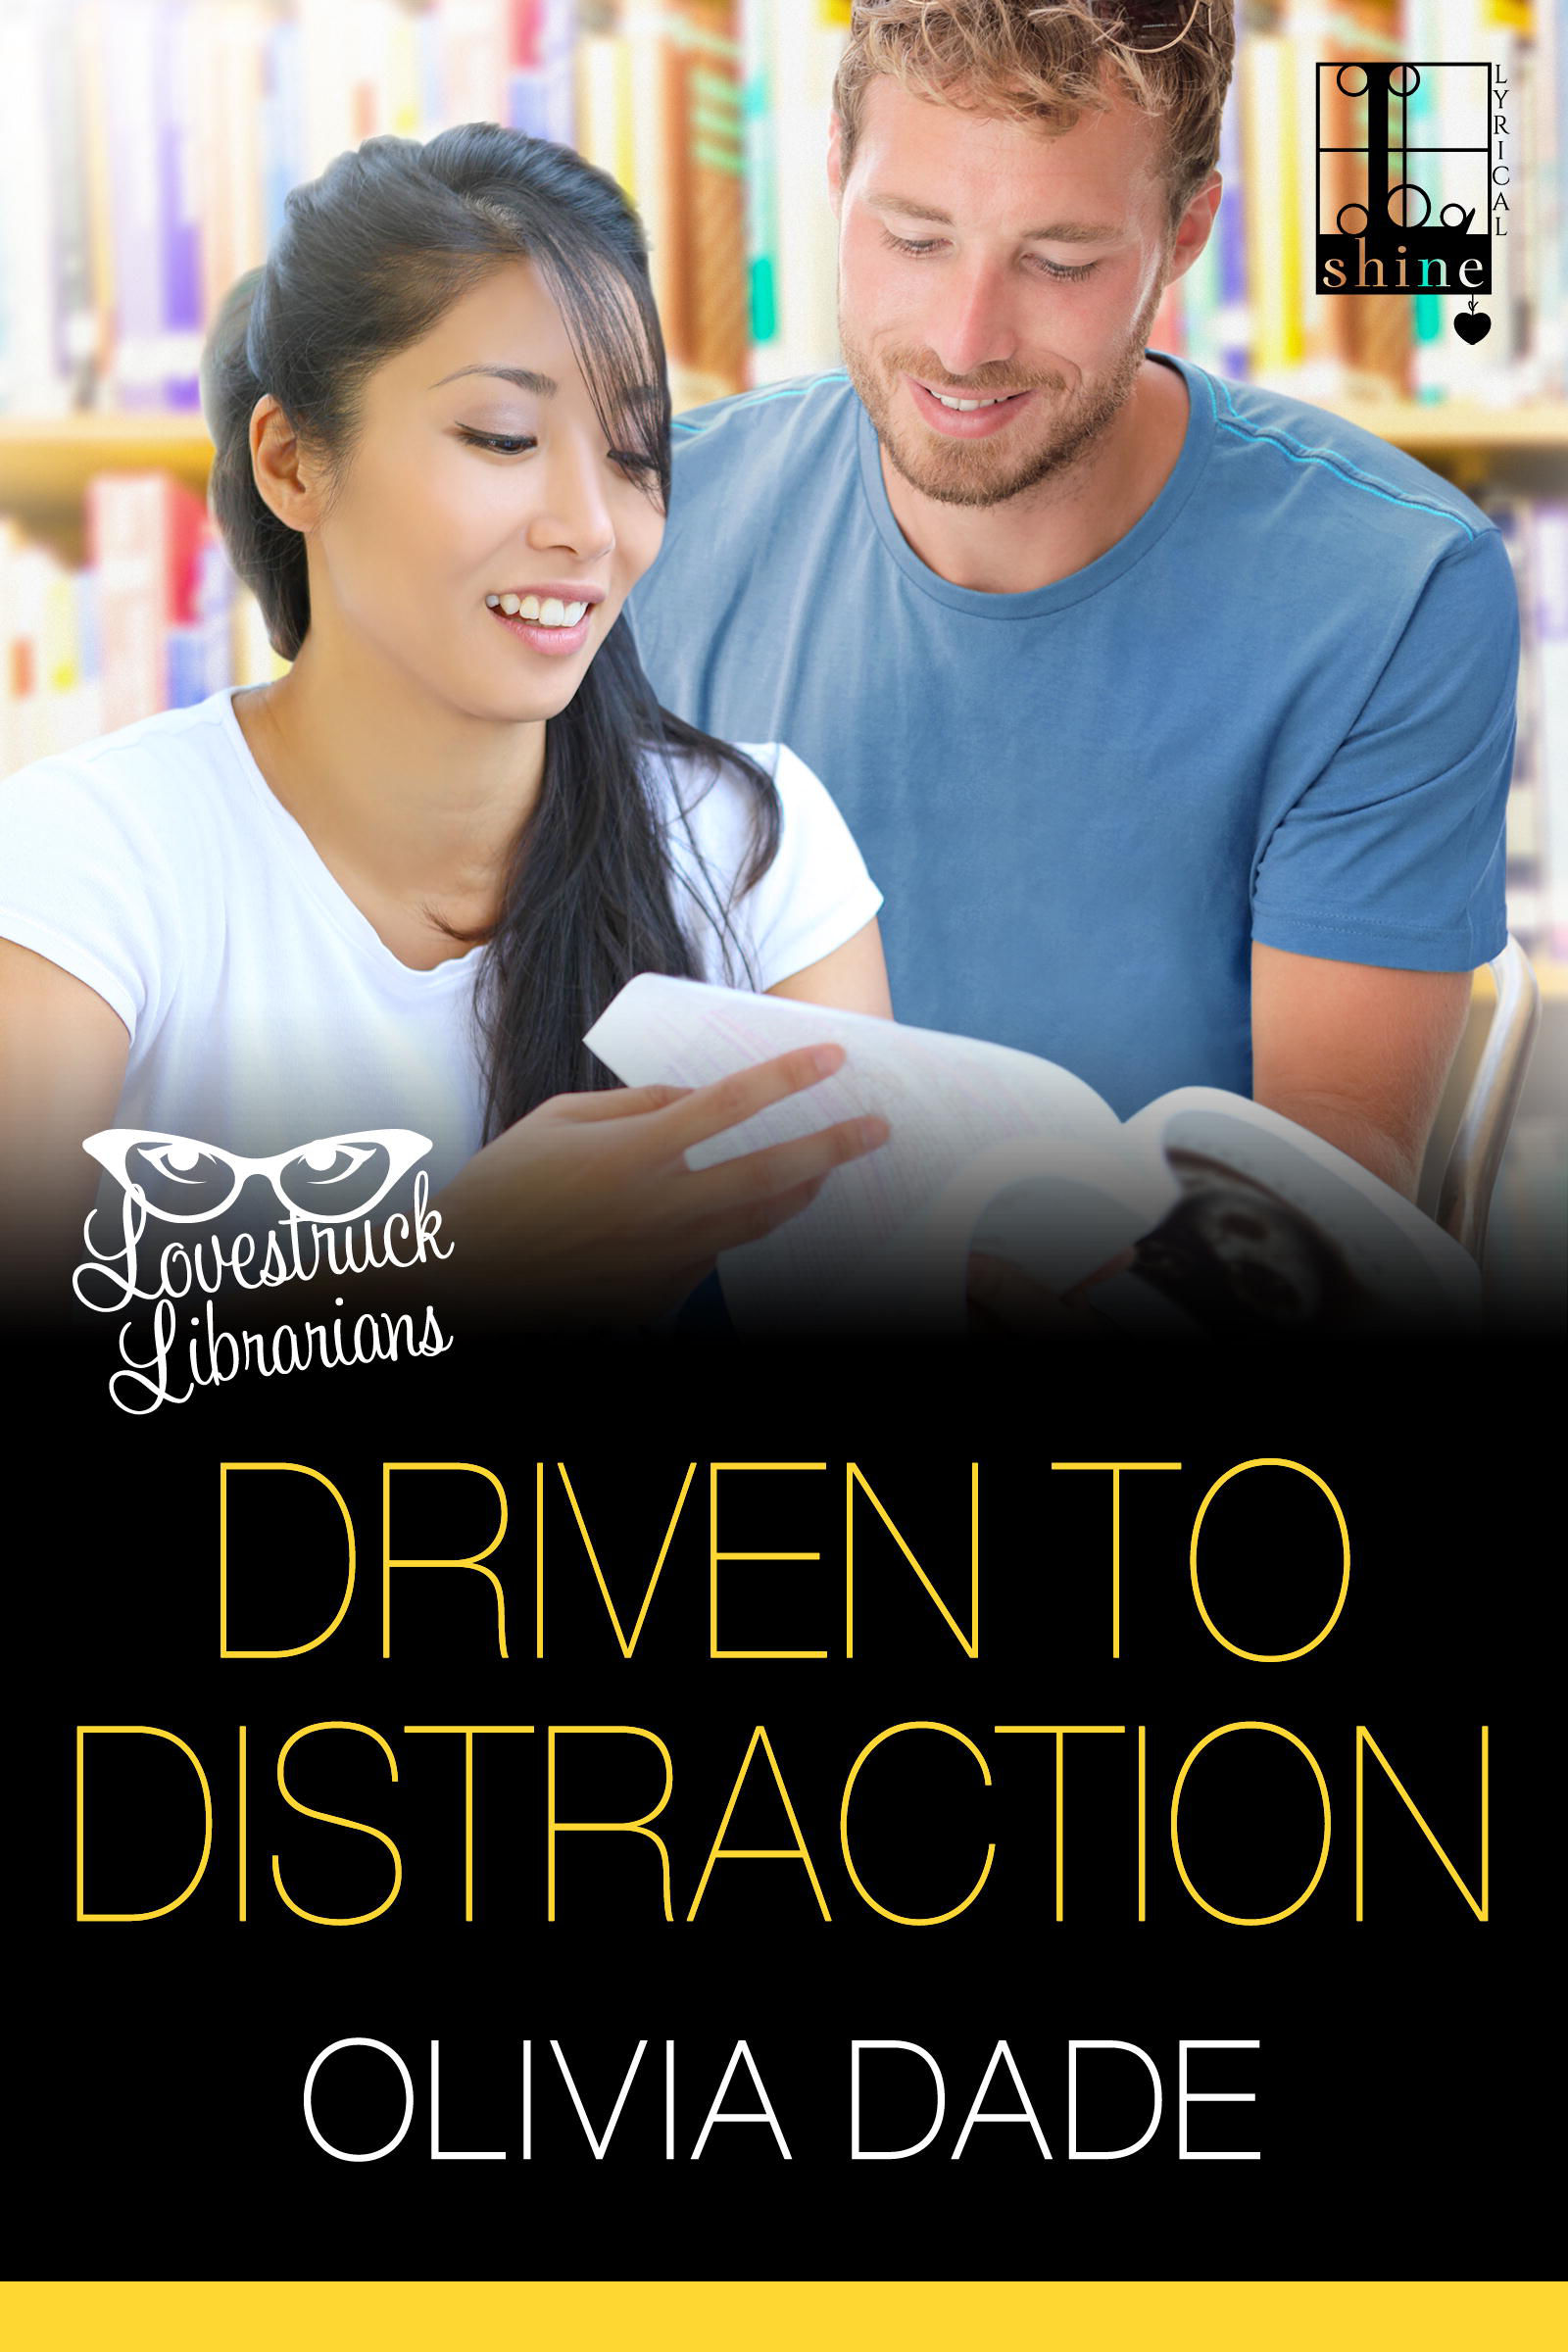 Driven to Distraction Cover